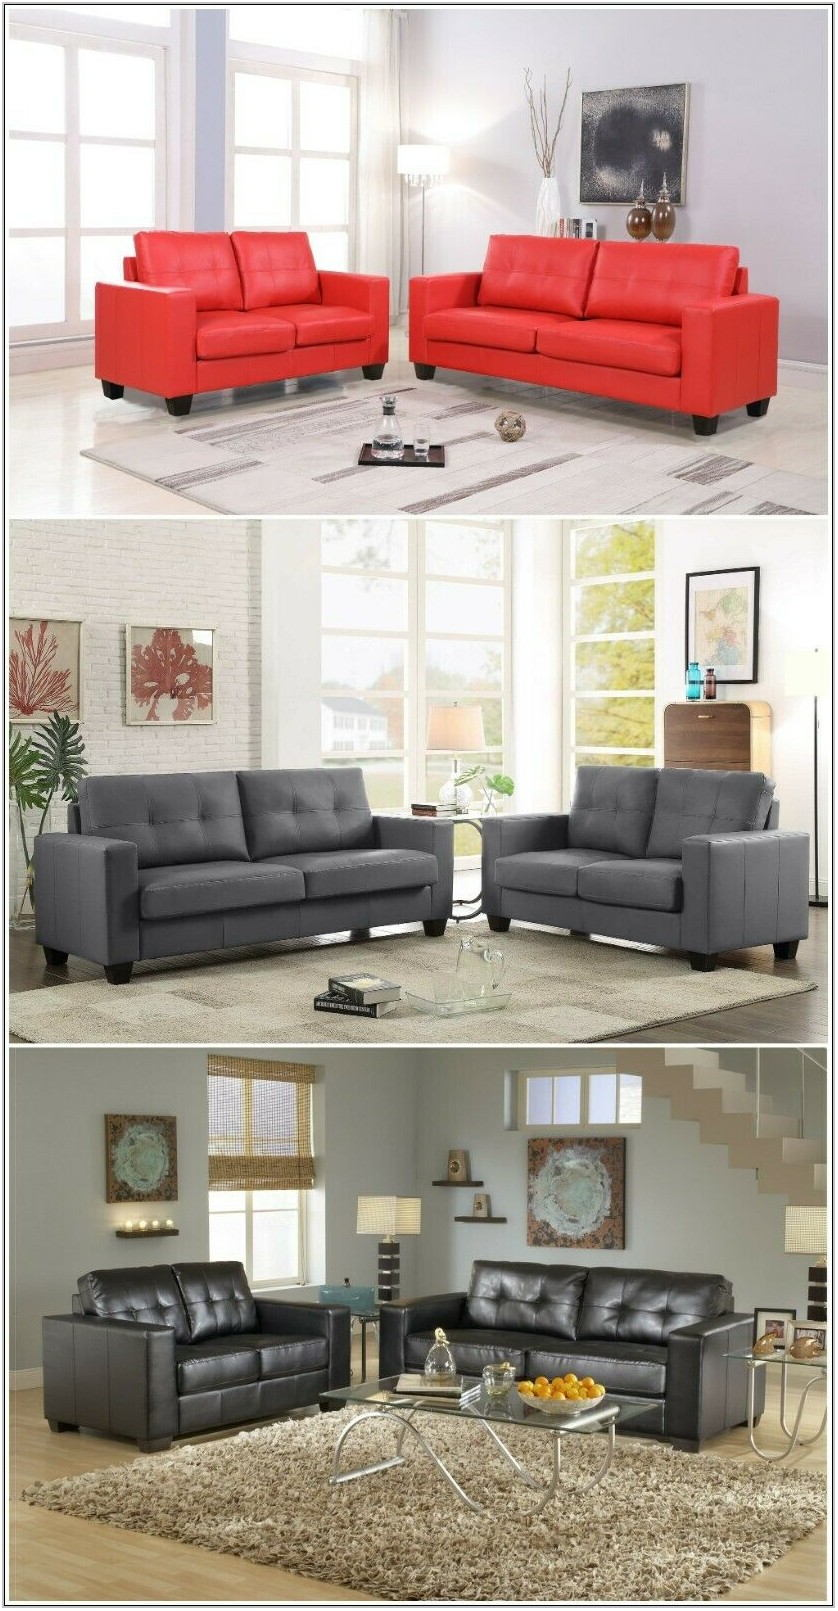 Gray Living Room Set For Sale